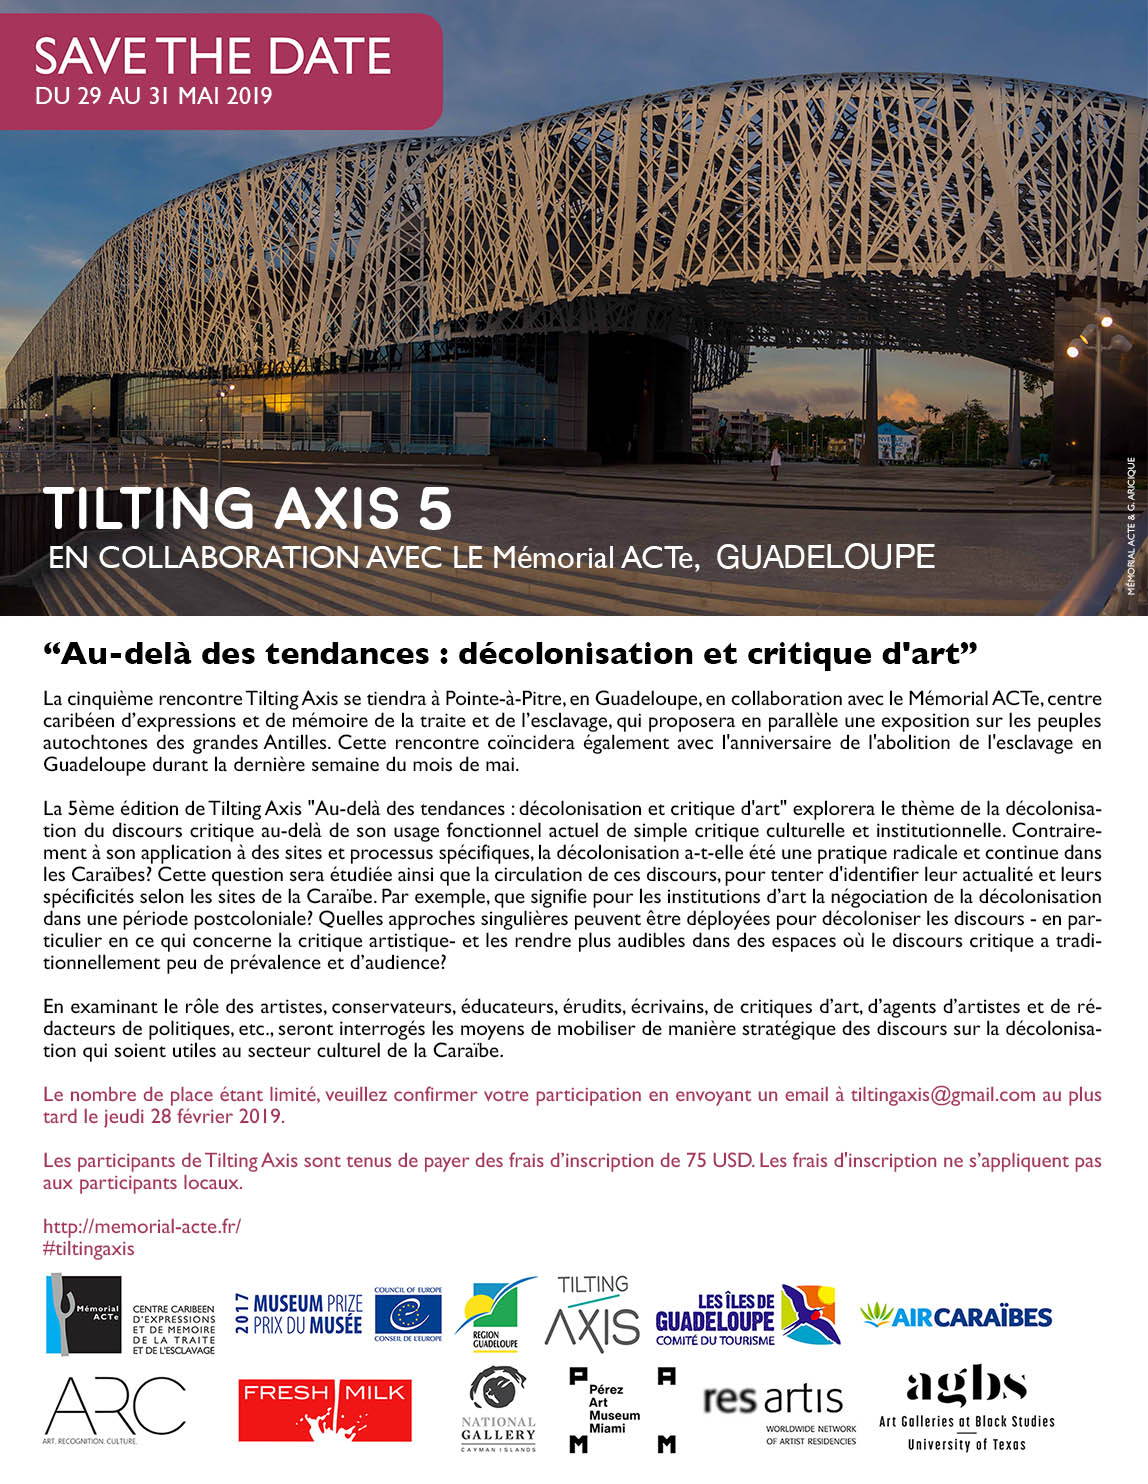 Tilting_Axis_5_Flyer_French_r1.jpg